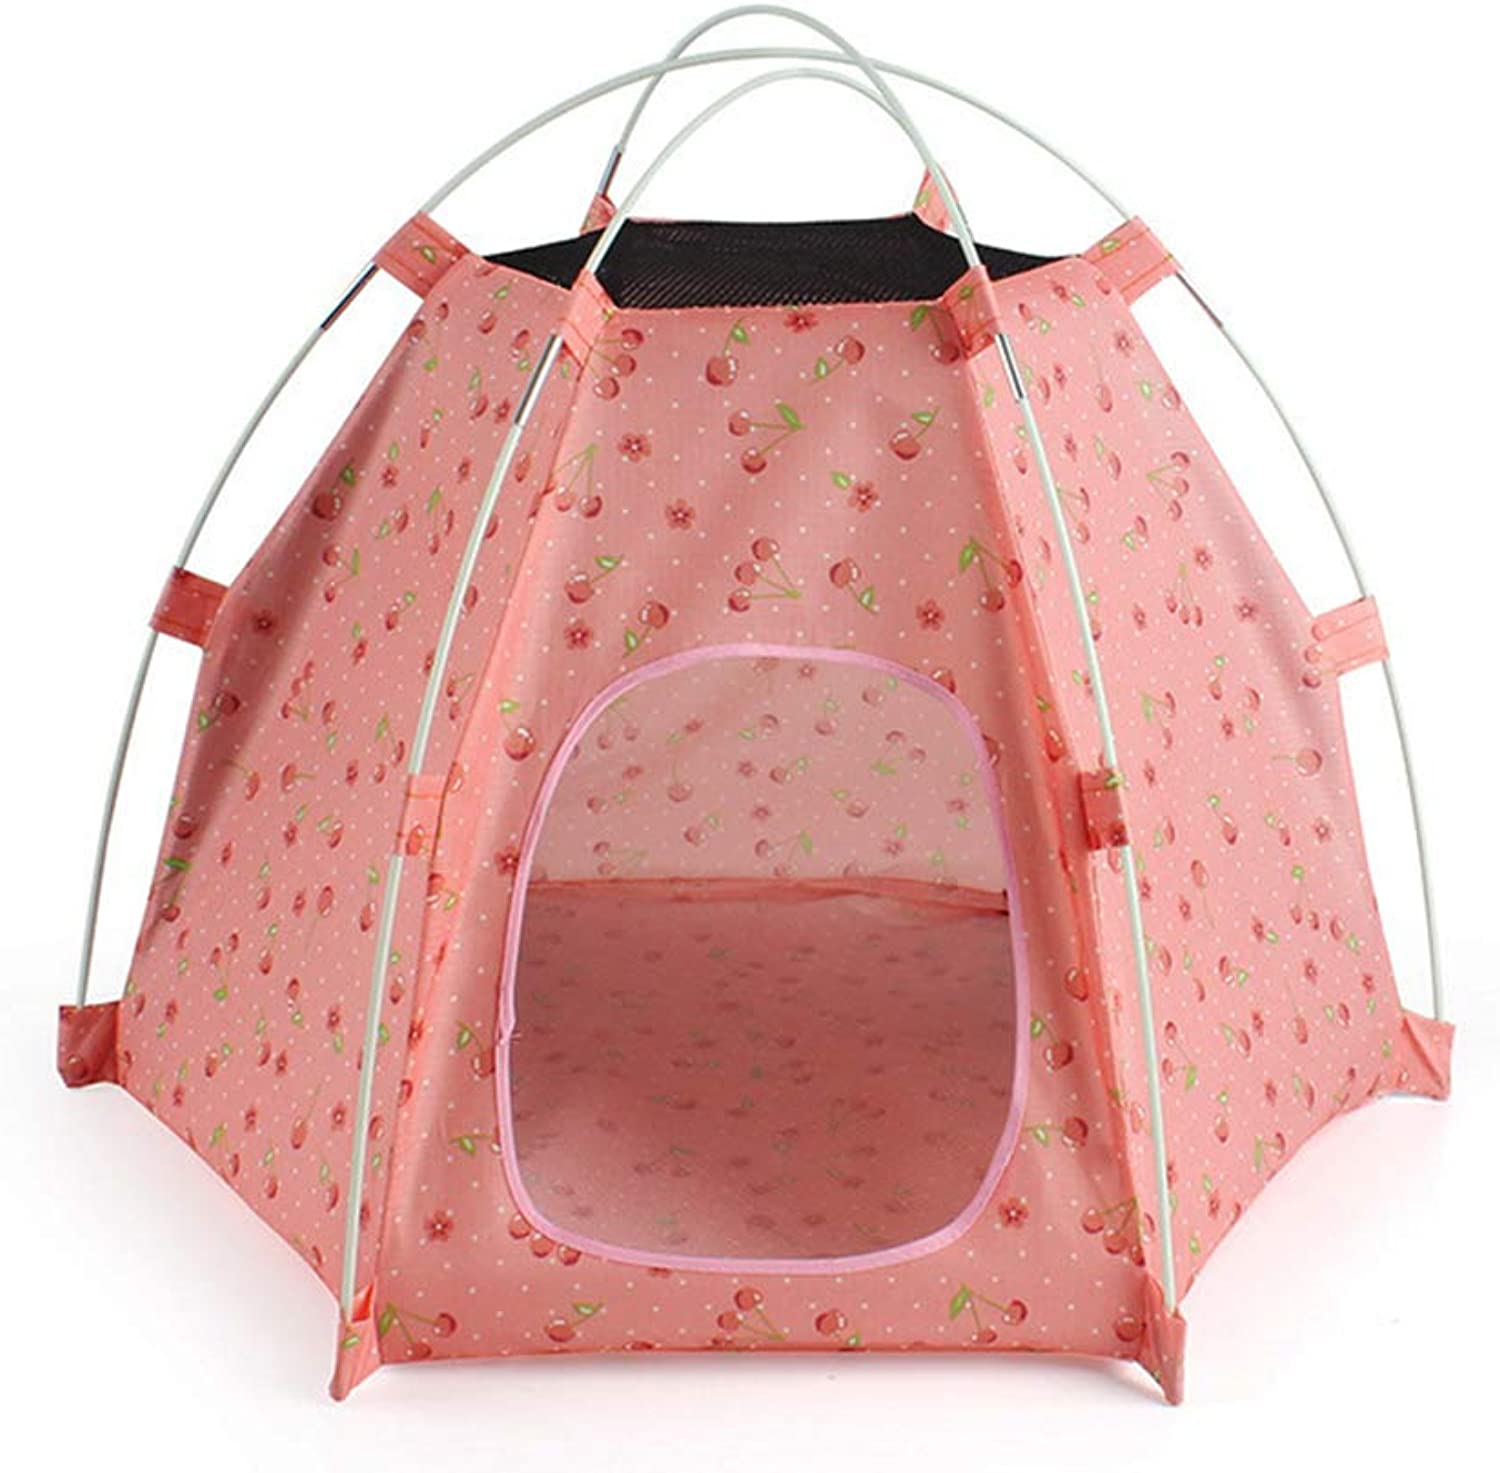 (27.5  21.6  20.8 Inches) Outdoor Sunscreen Pet Tent Suitable for Small and Medium Pet Dogs and Pet Cats Foldable Portable Outdoor Travel Camping Pet House,2